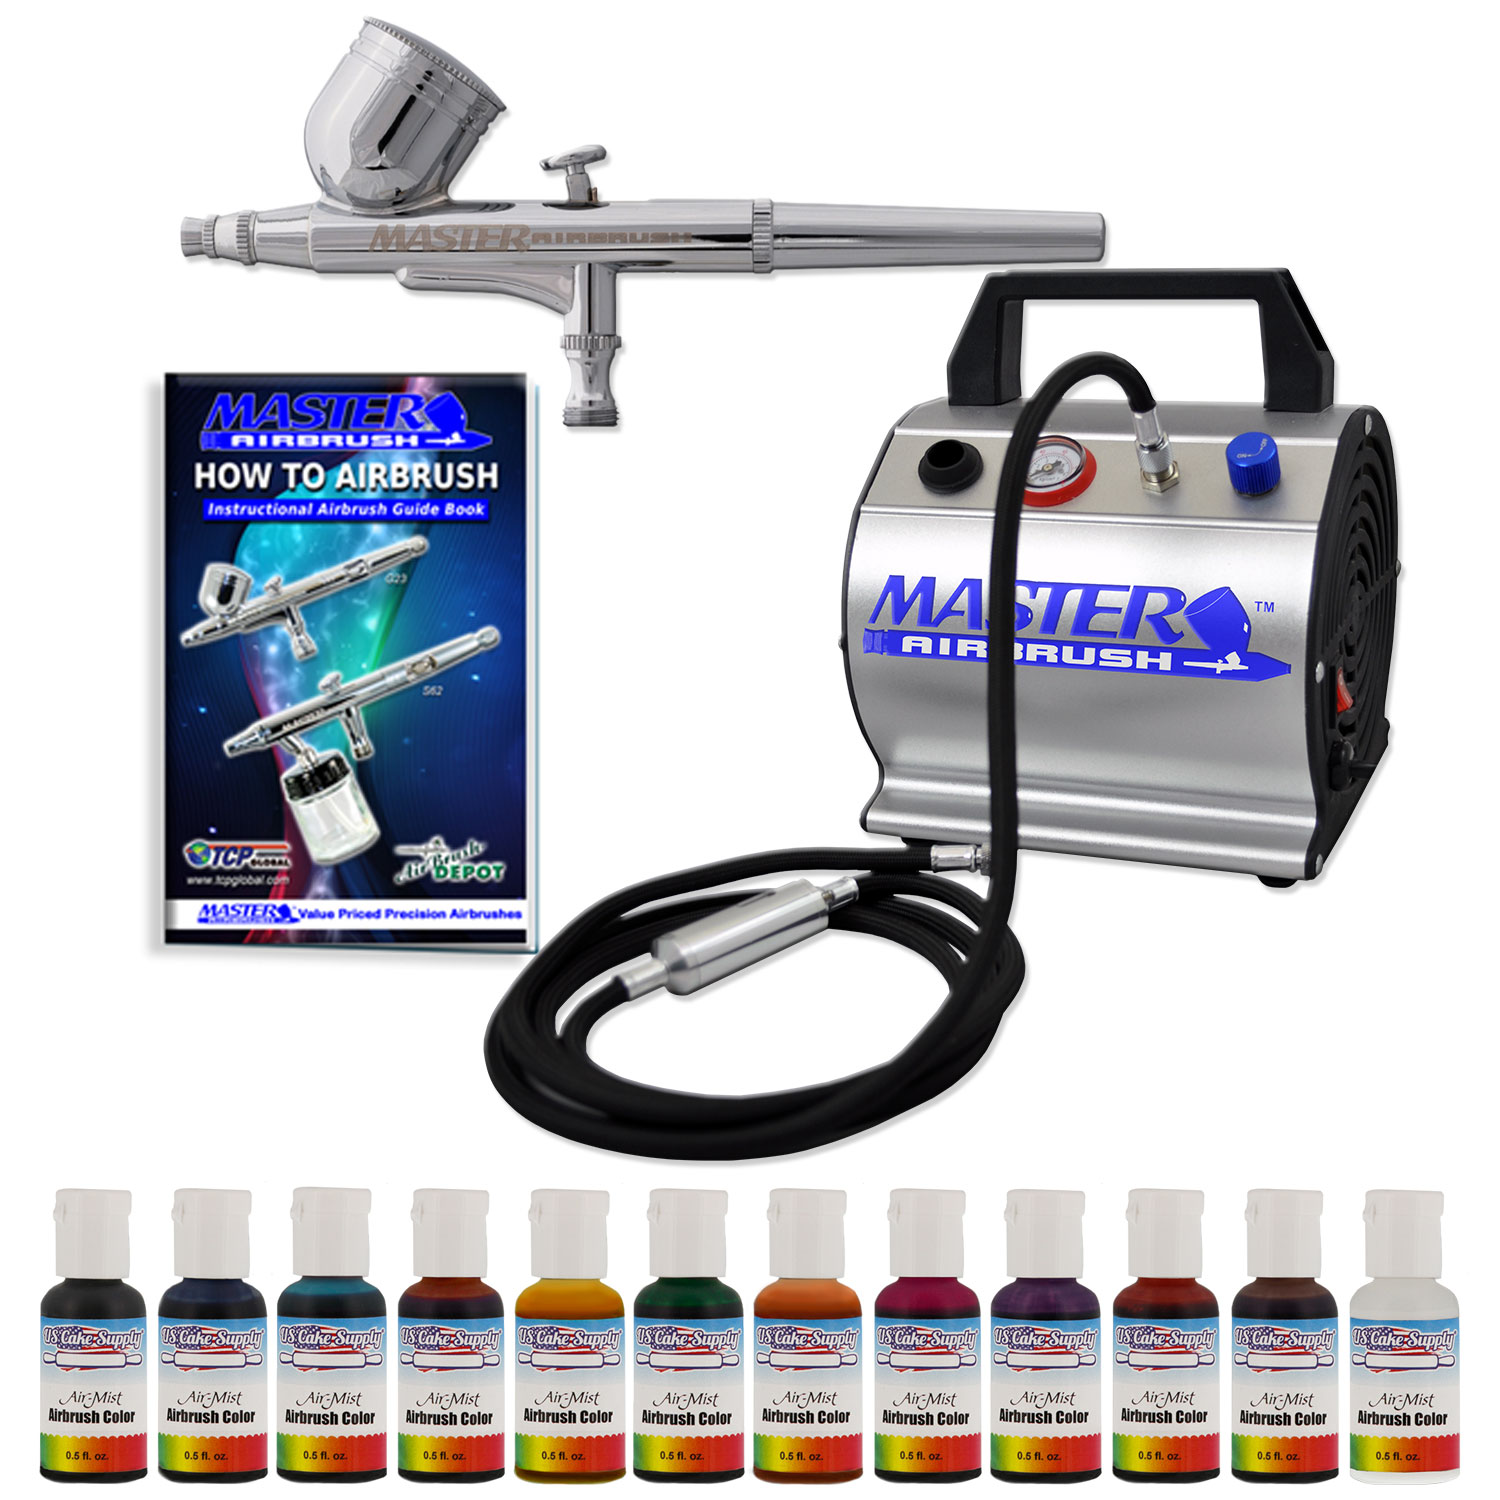 Professional Airbrush Cake Decorating System : Professional Premium Master Airbrush Cake Decorating ...